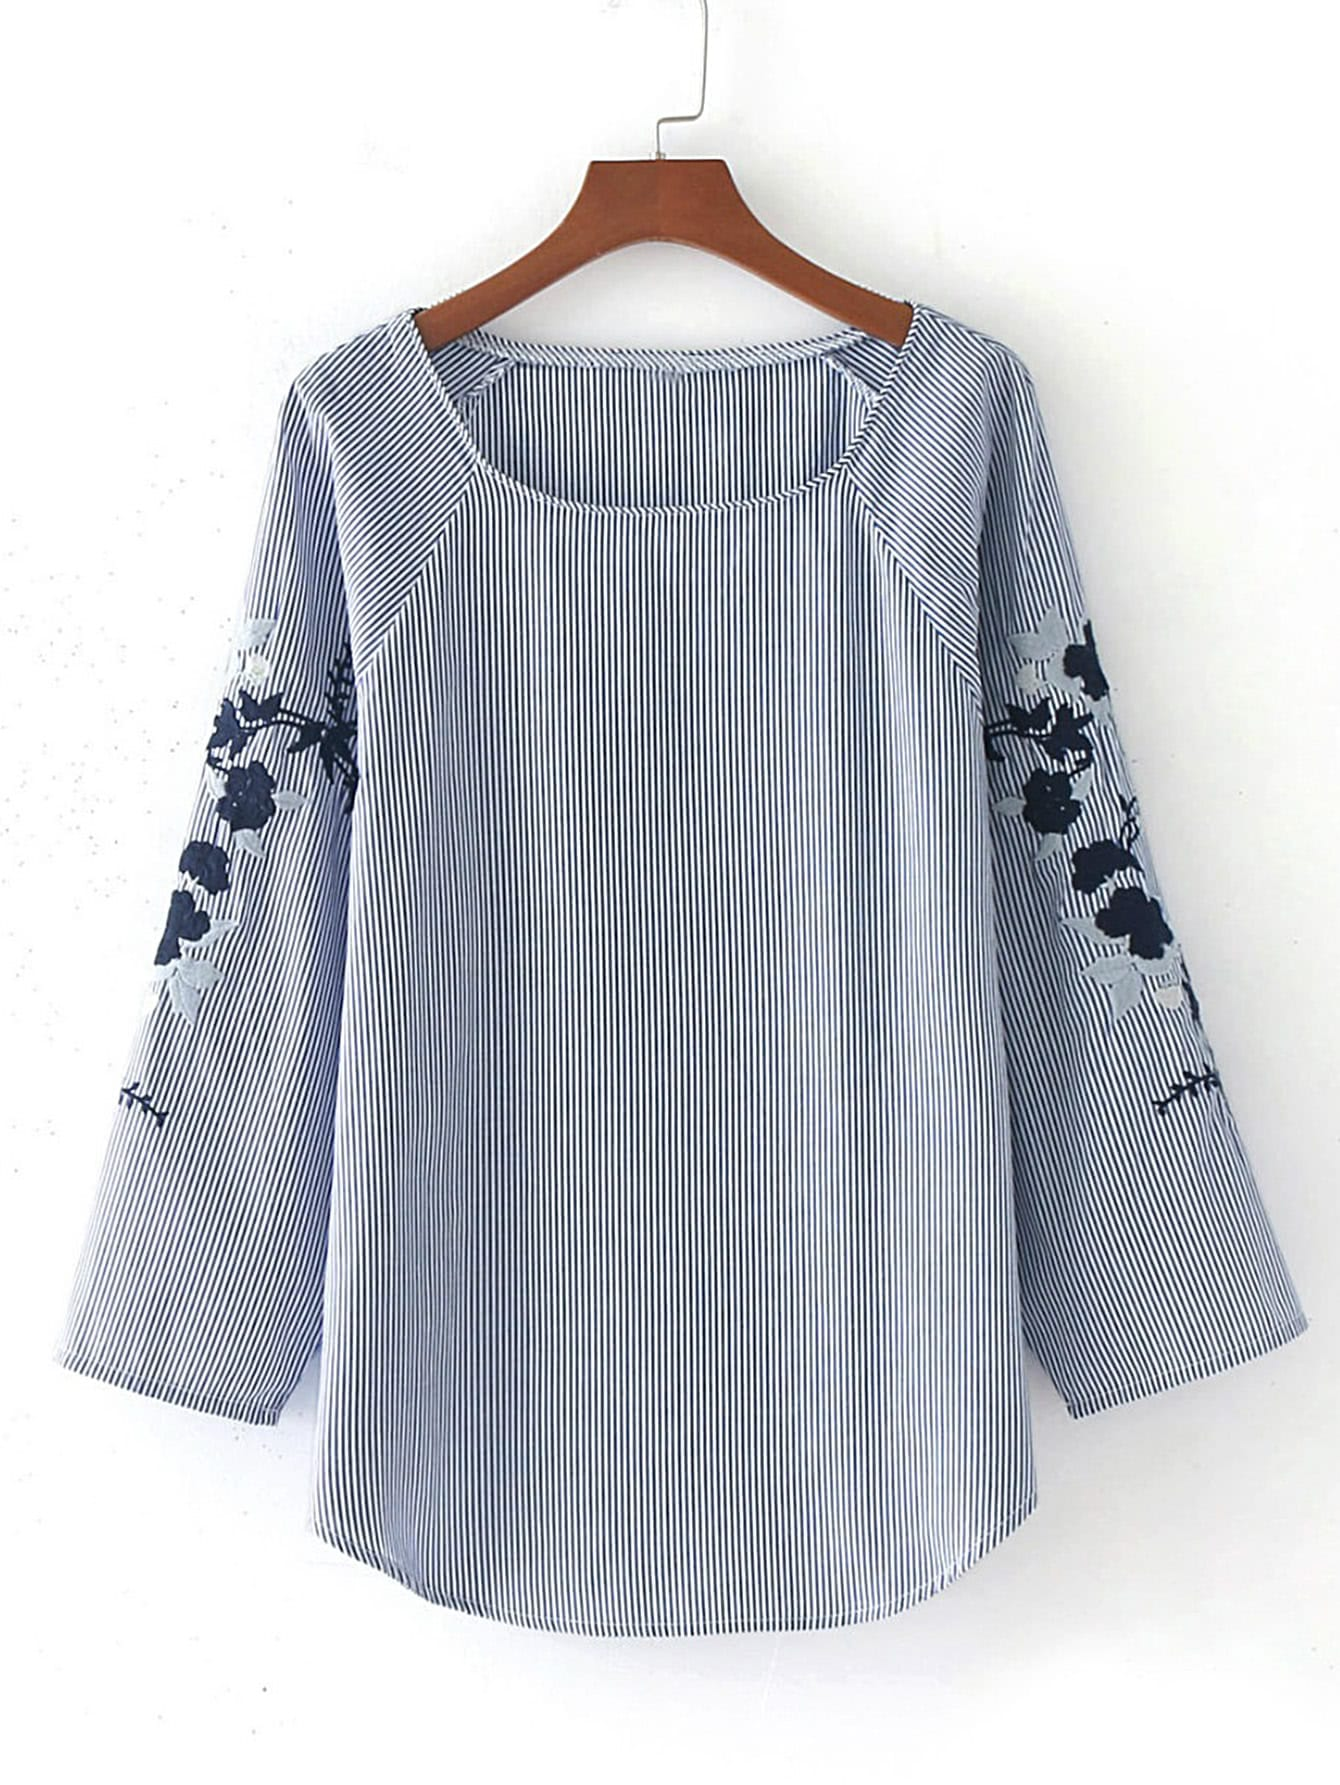 http://it.shein.com/Raglan-Sleeve-Embroidery-Pinstripe-Blouse-p-368928-cat-1733.html